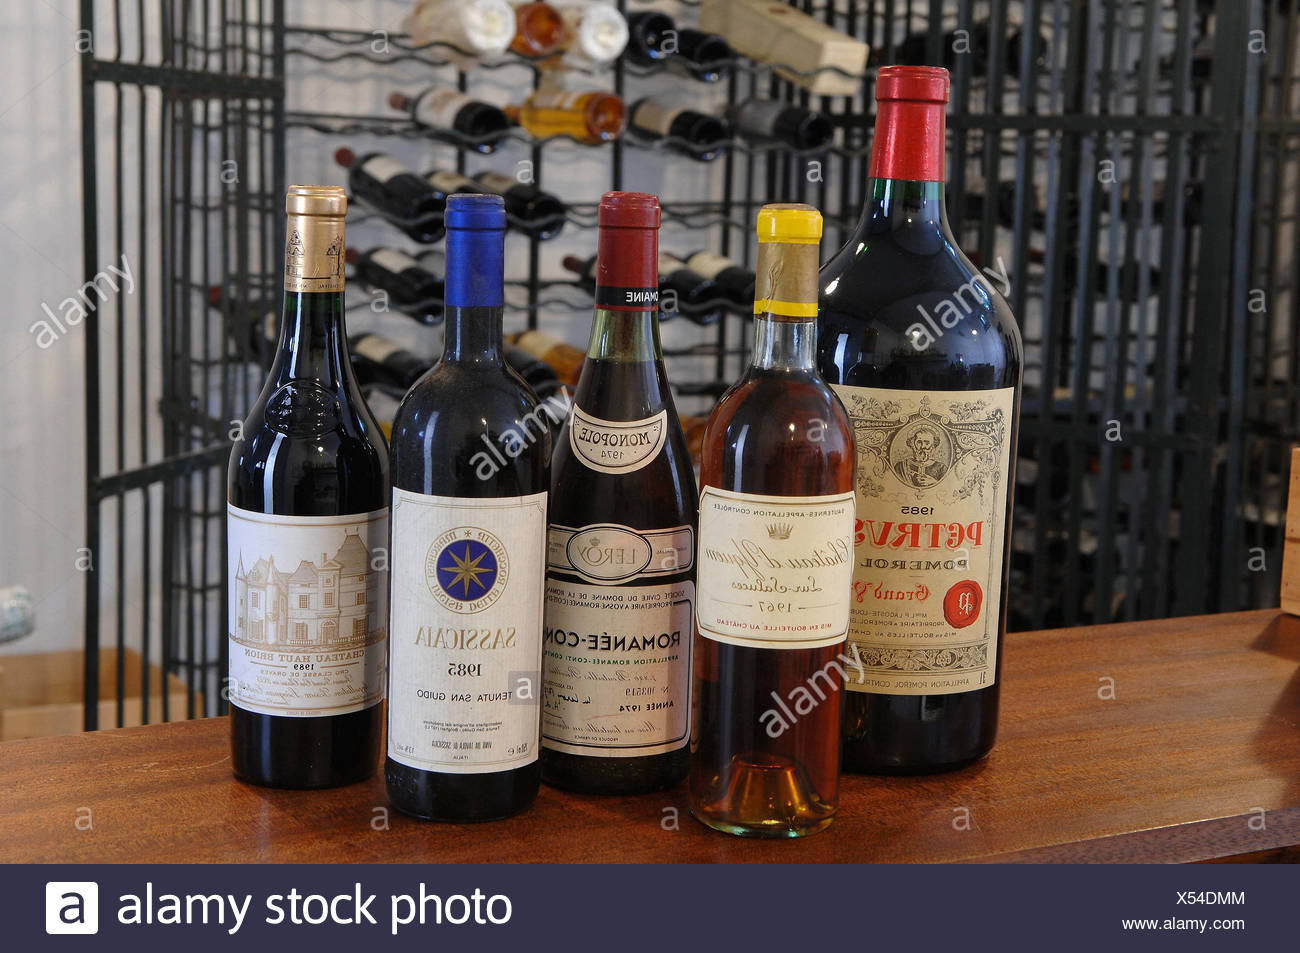 Bottle of romanee conti red wine photos bottle of romanee conti red wine images alamy - Tache de vin rouge ...